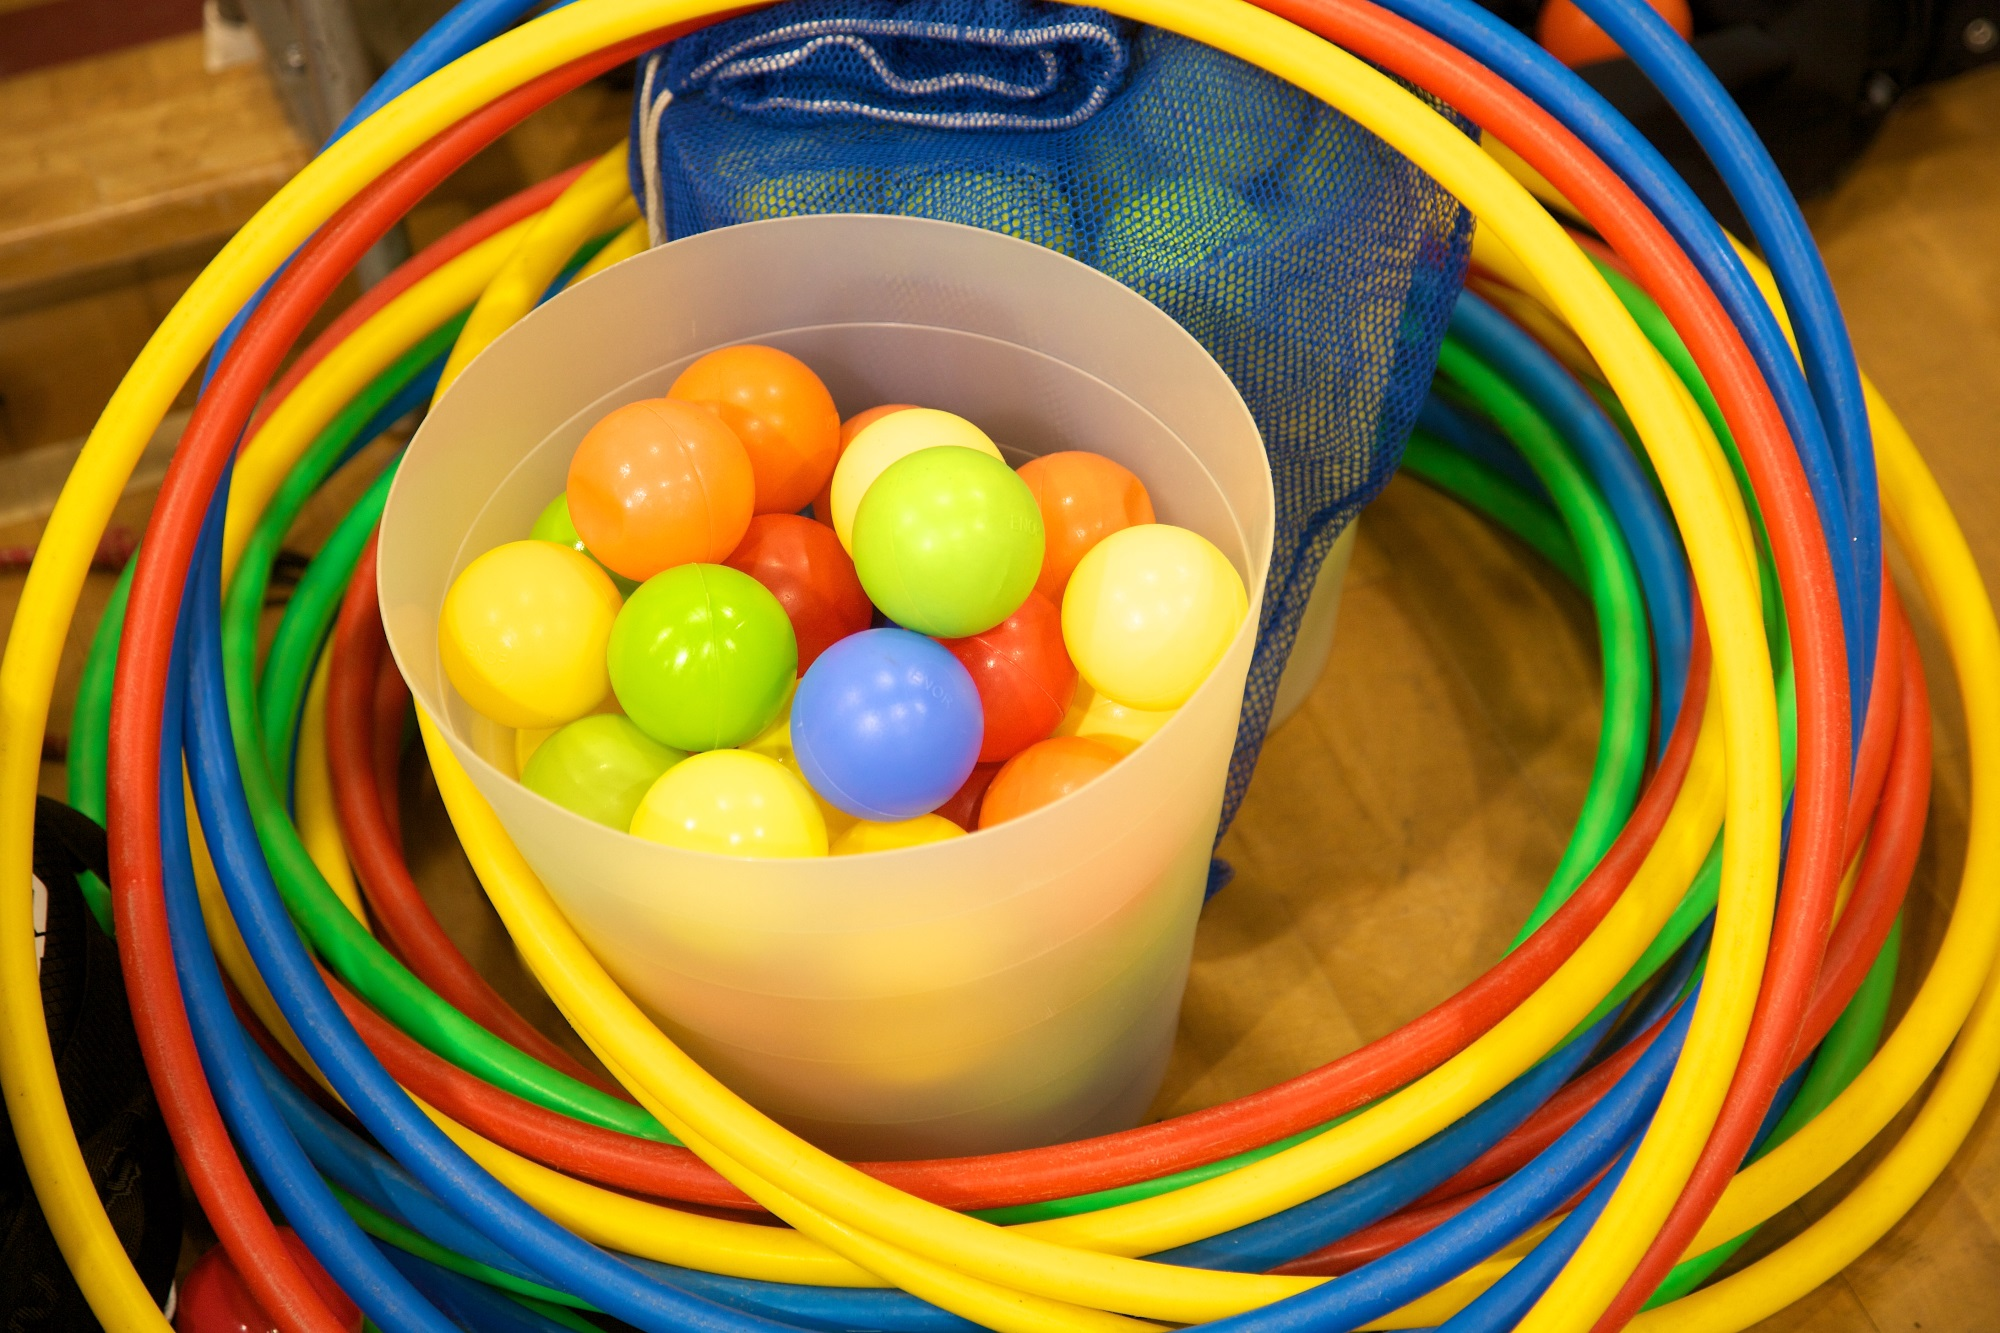 Multi-coloured plastic balls and hoops